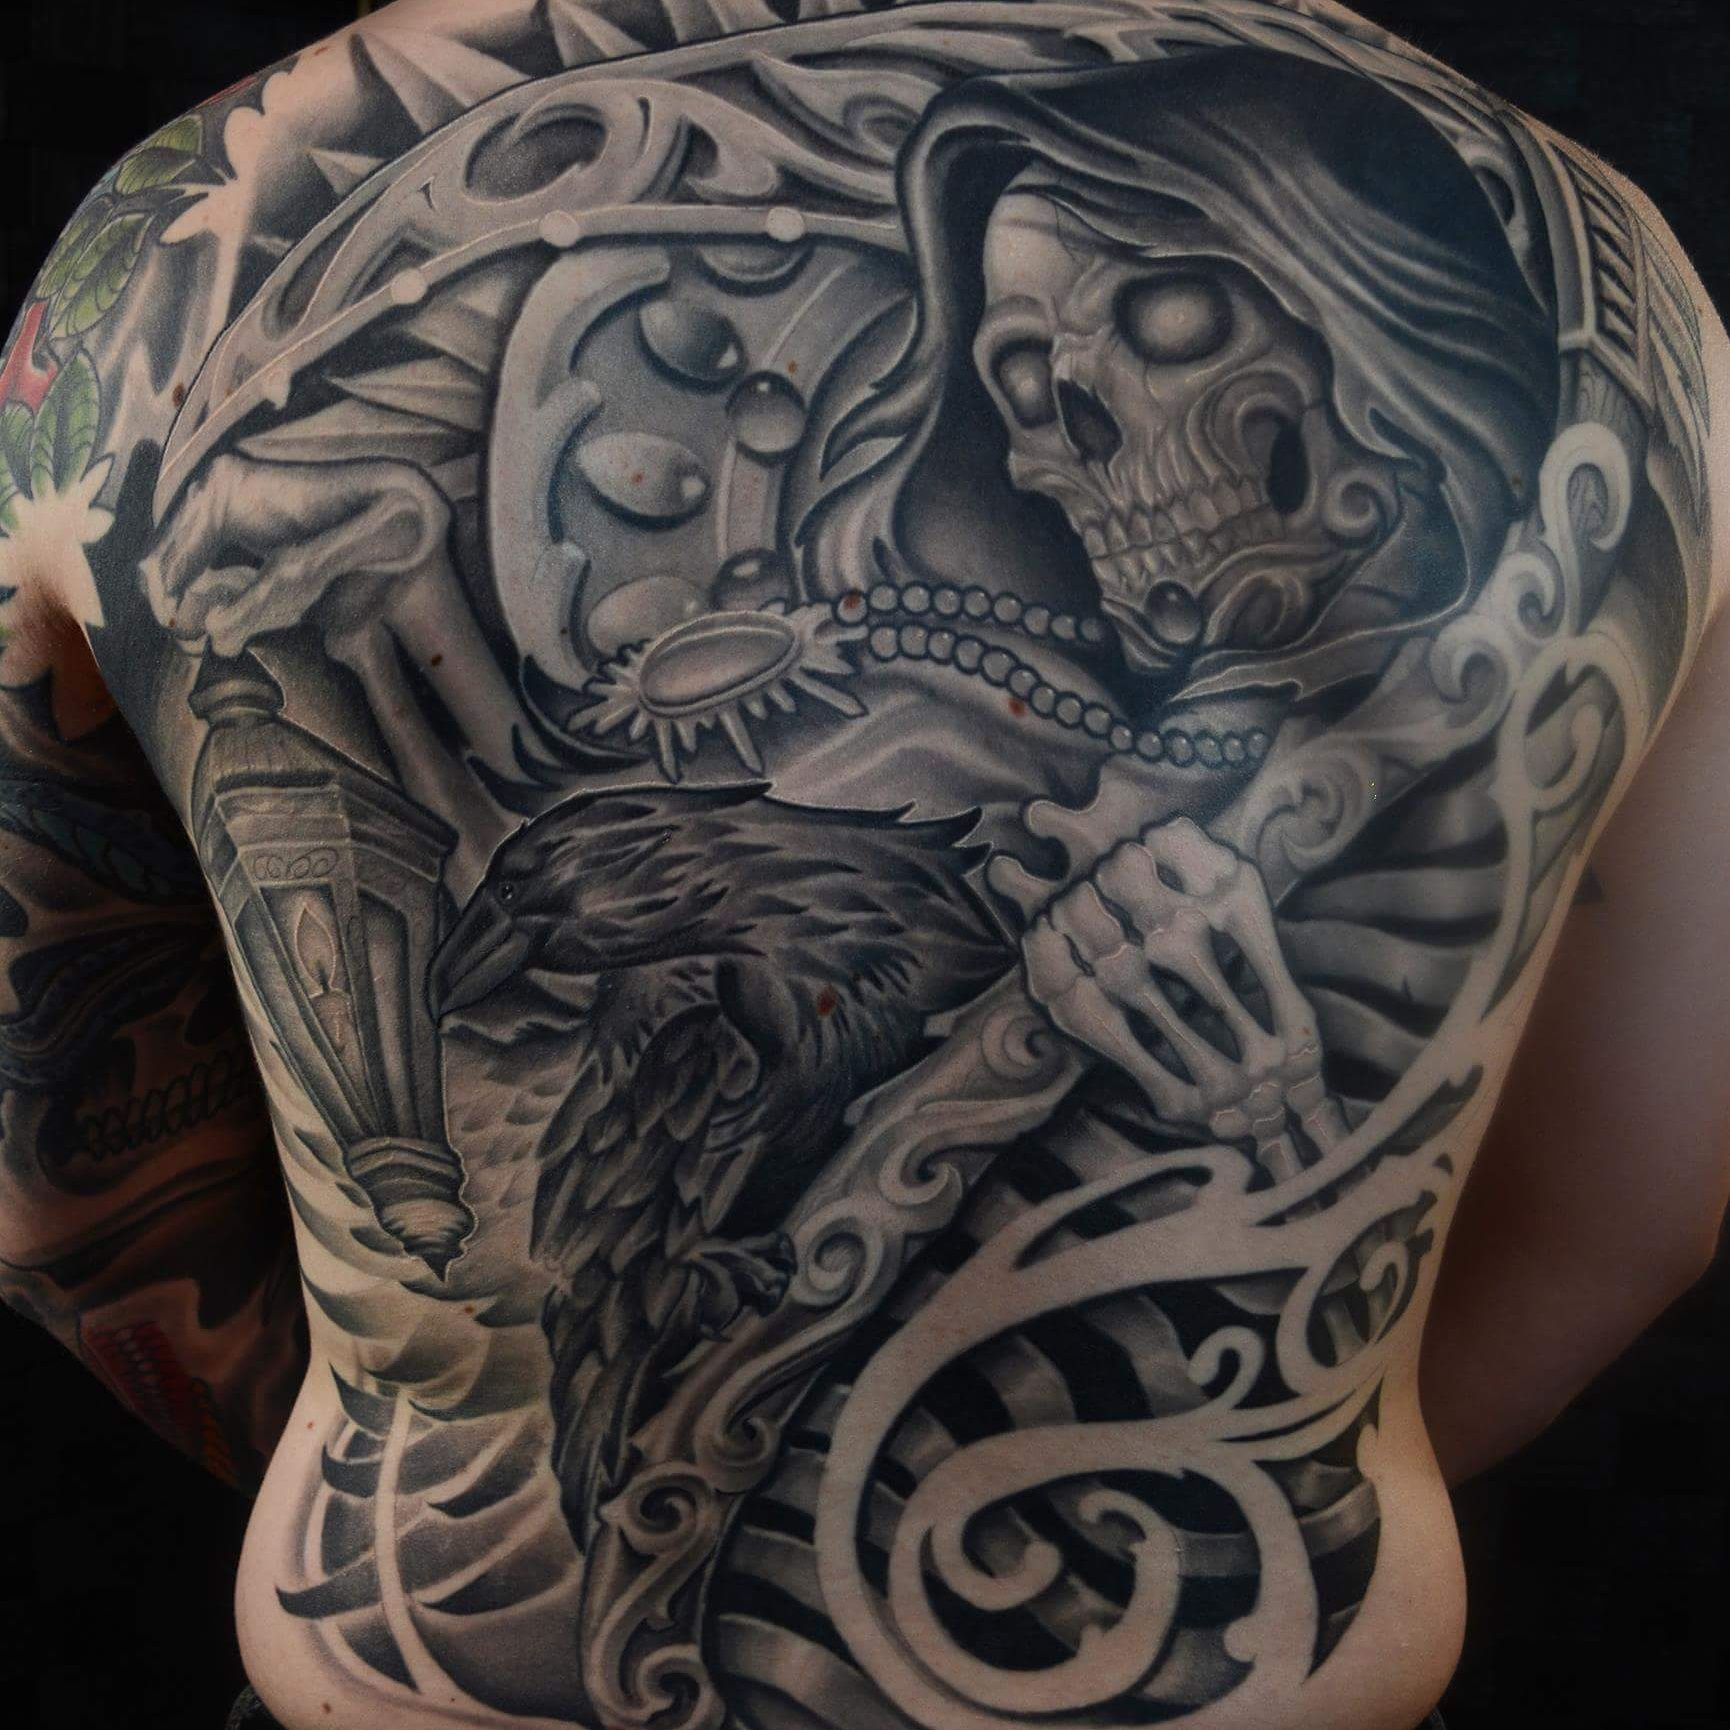 Grim Reaper Back Tattoo: My Grim Reaper Back Piece Done By Chris Ramirez At